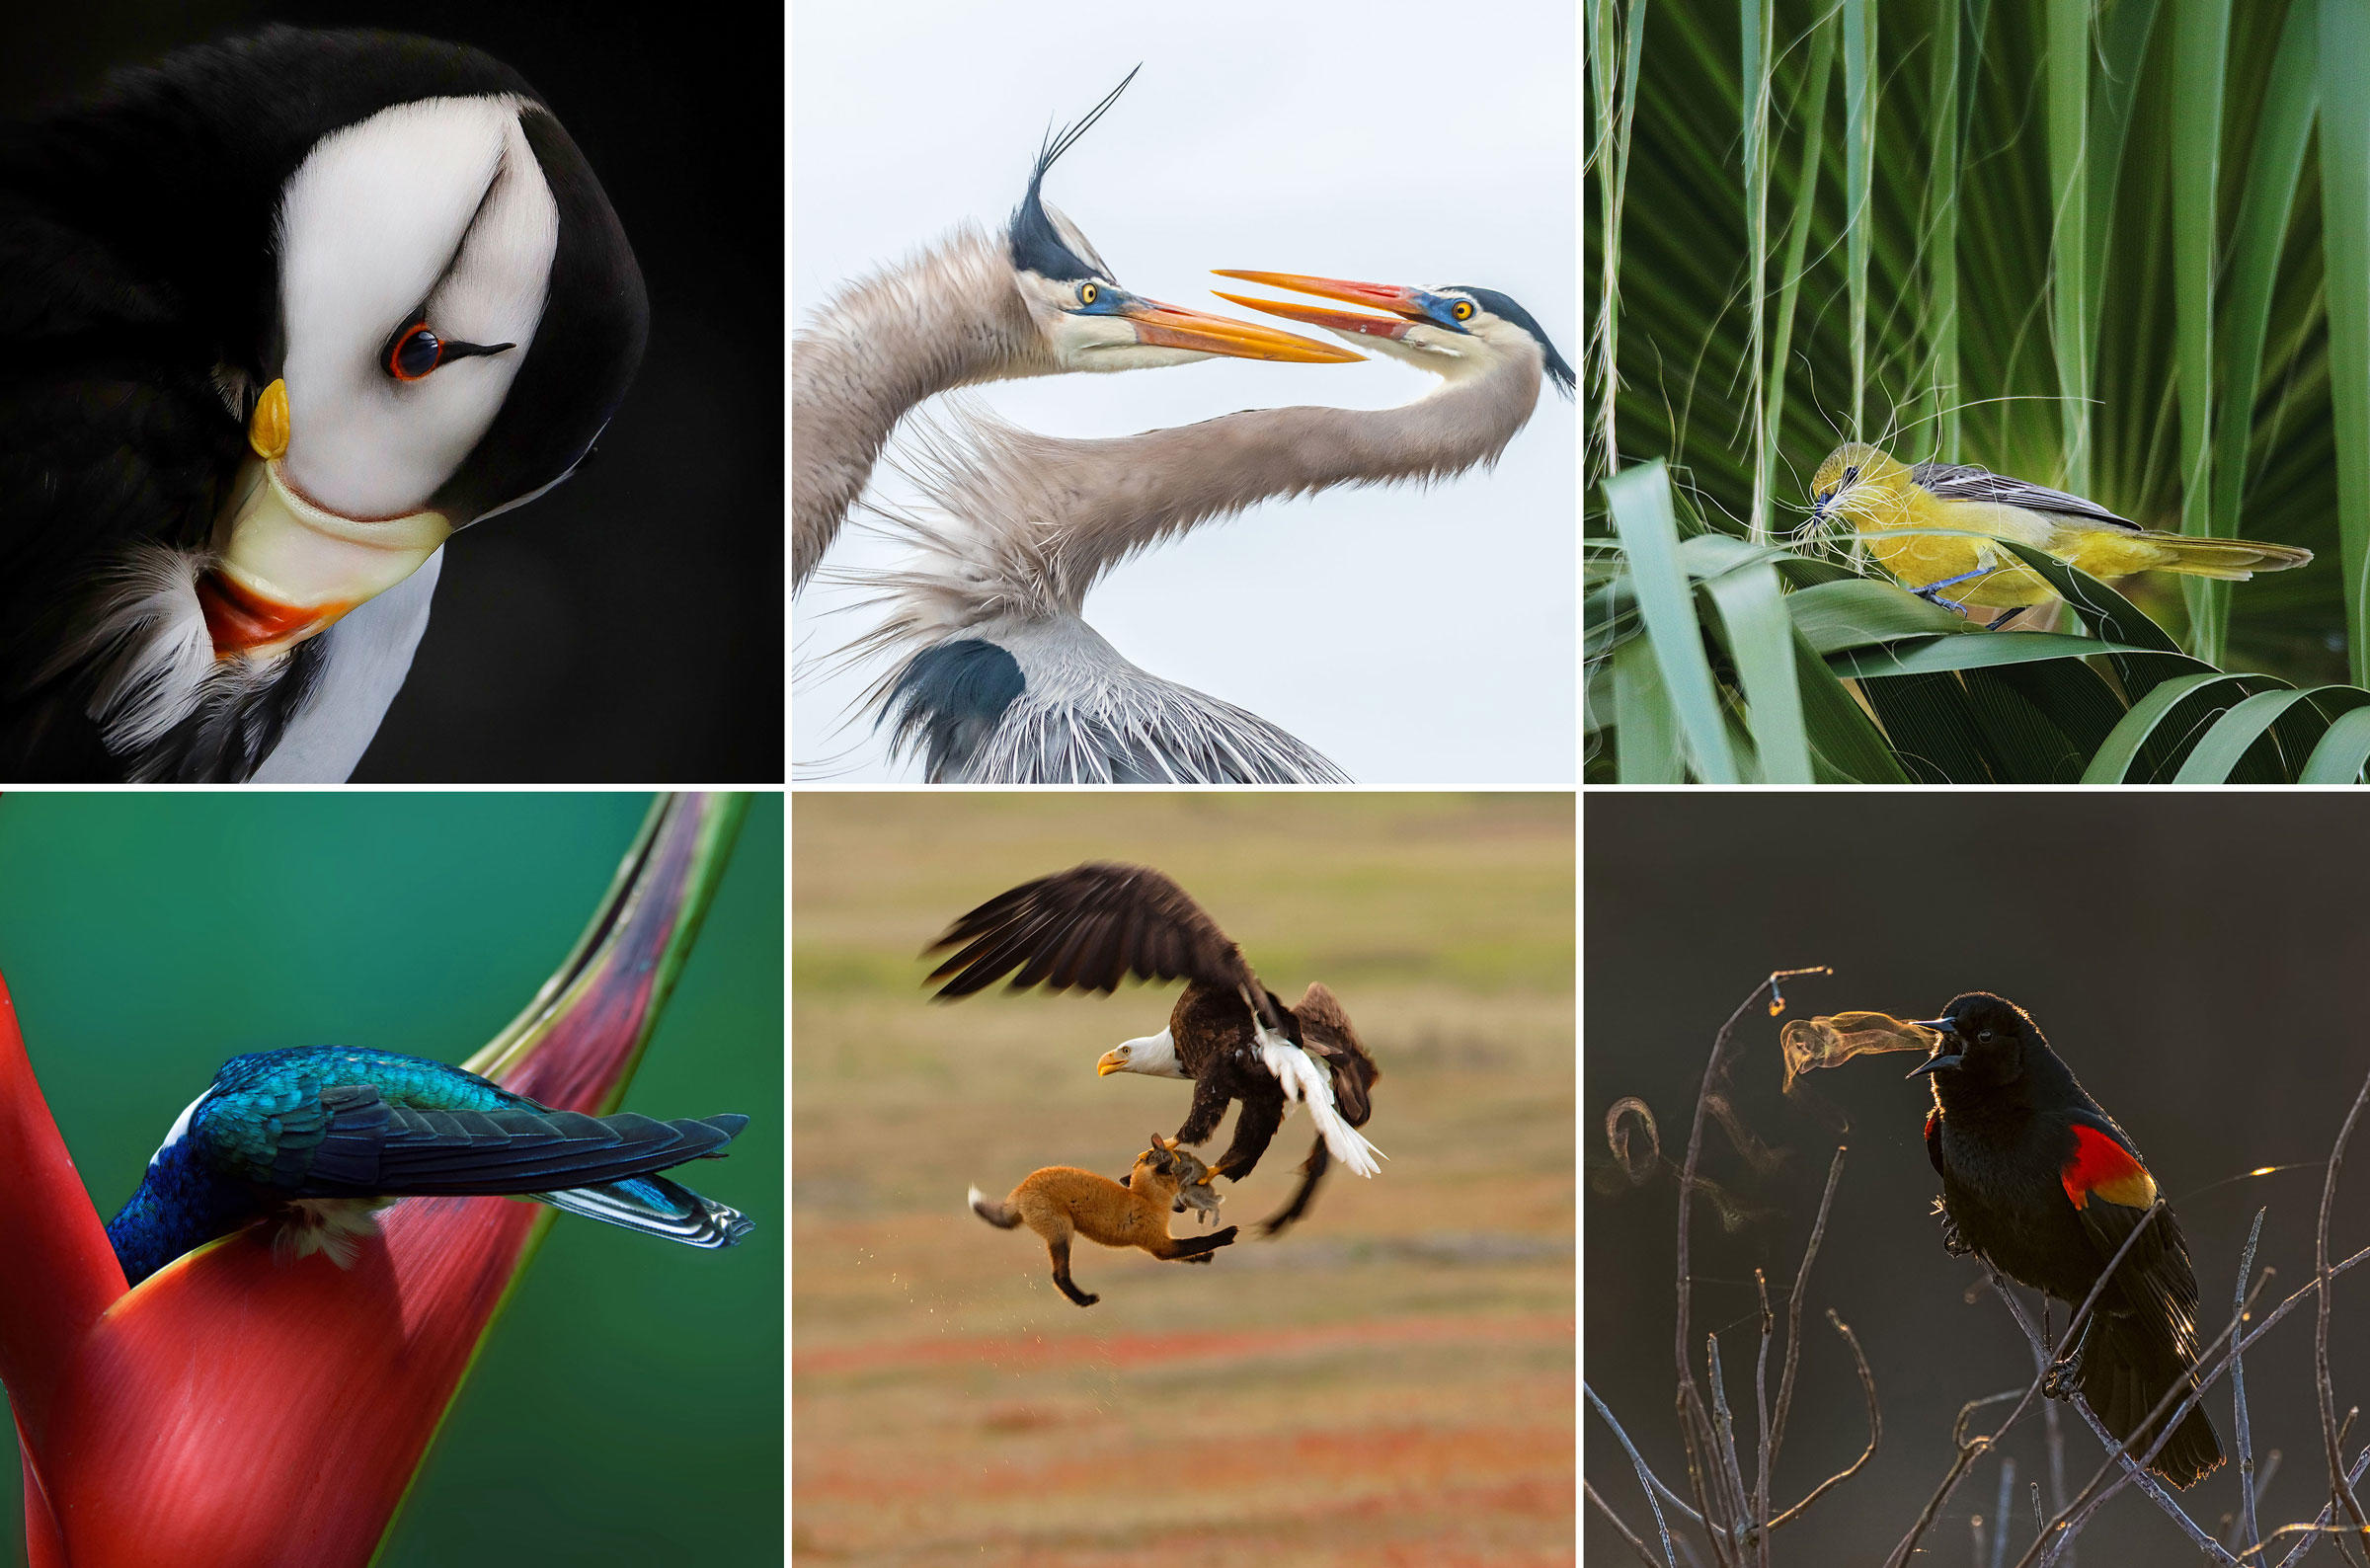 winning photos from The Audubon Society annual photography competition